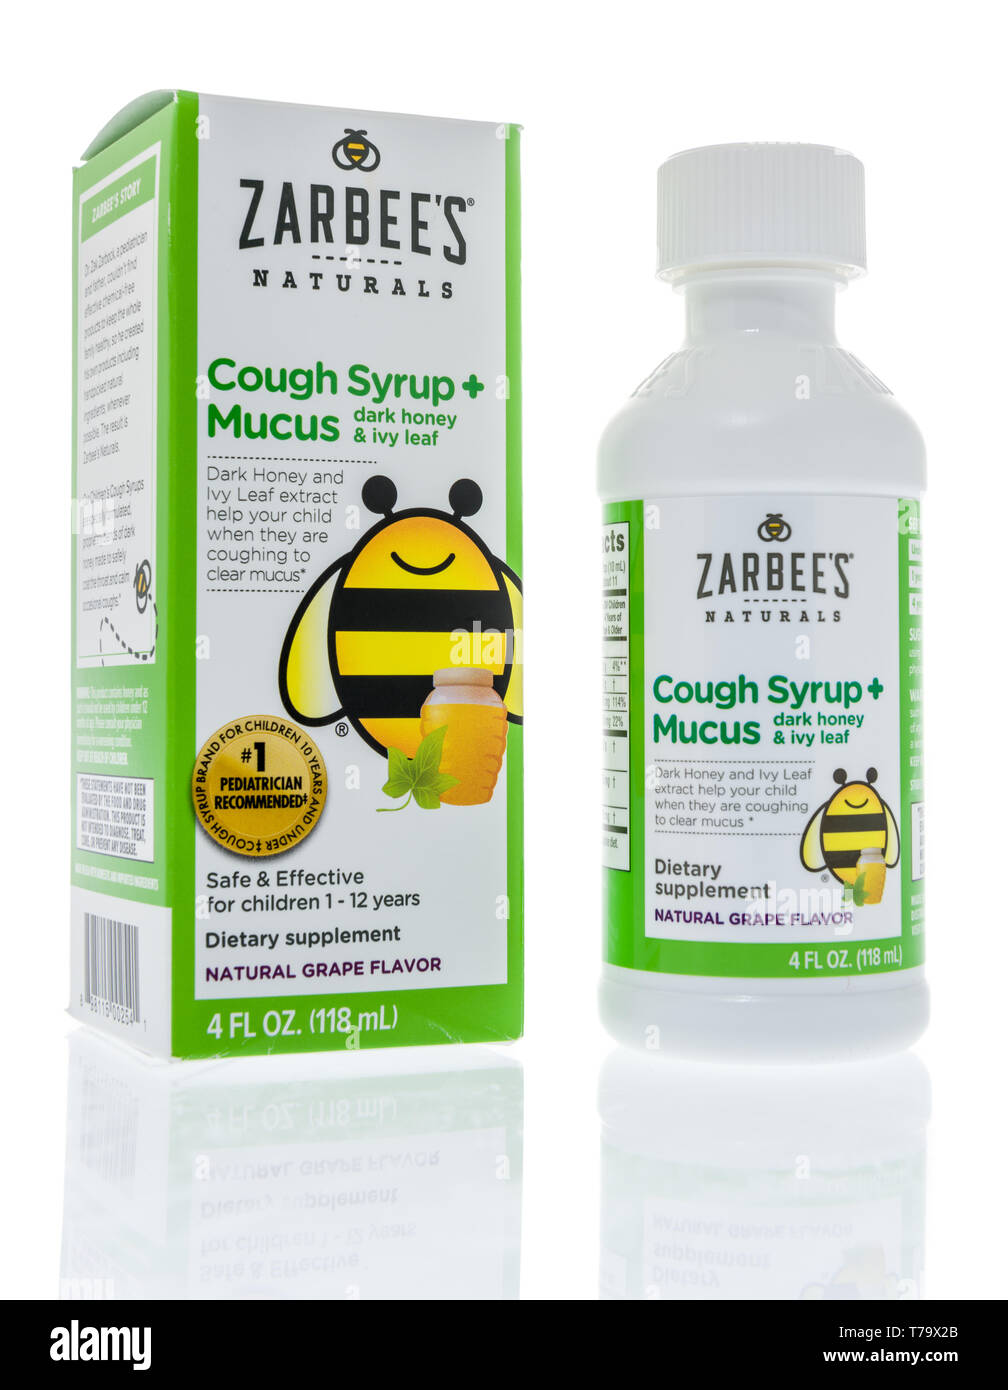 Winneconne, WI - 3 May 2019:  A package of Childrens Zarbees naturals cough medicine on an isolated background. - Stock Image